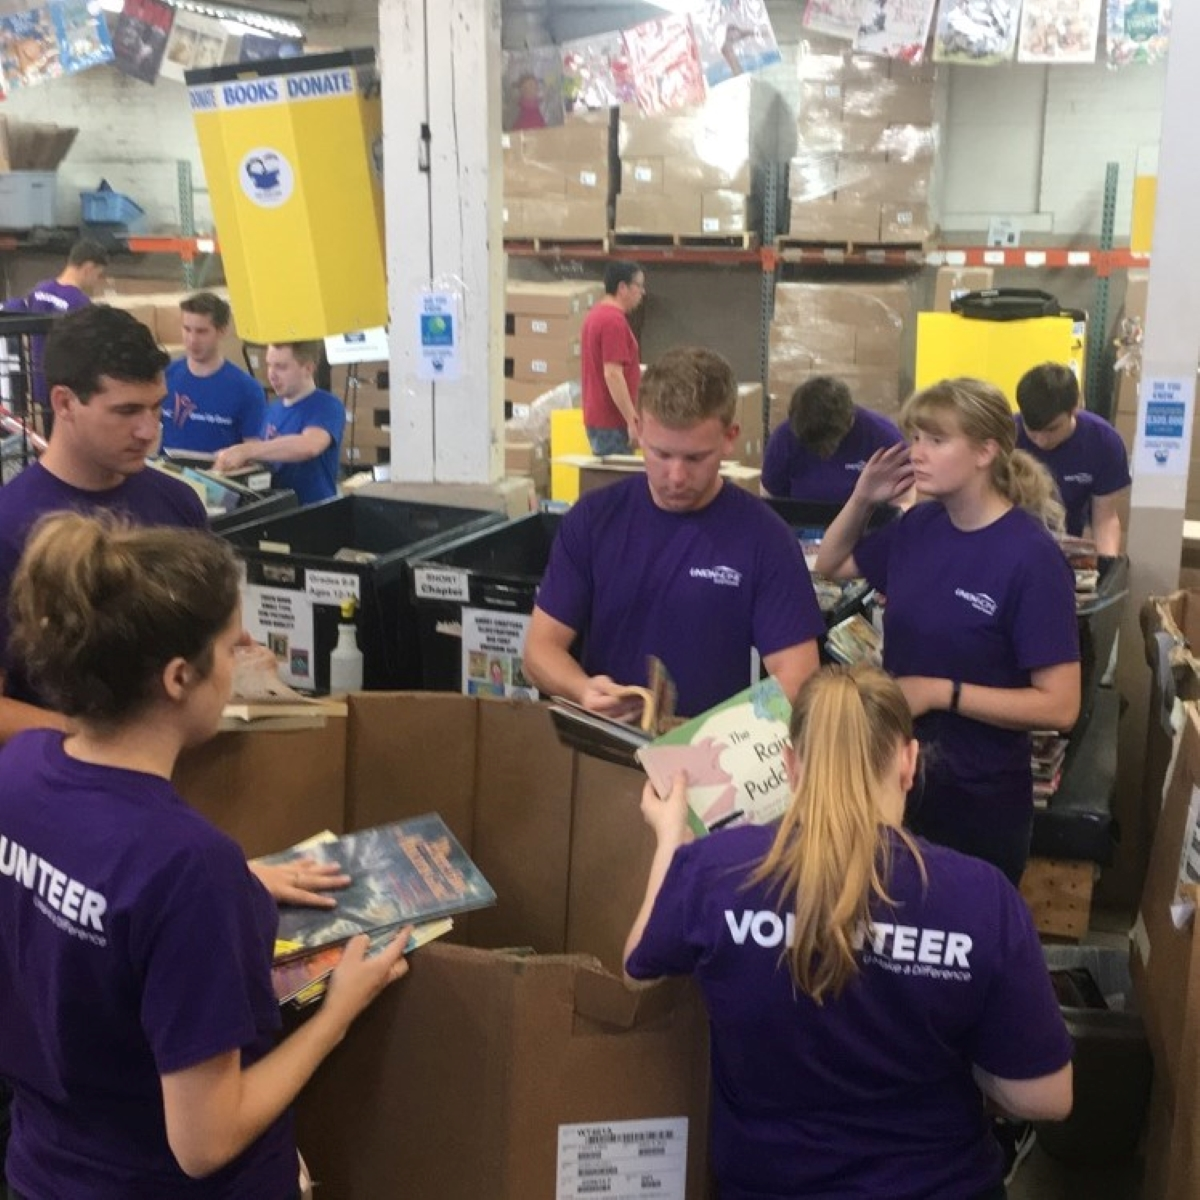 A group of interns volunteering at a book drive